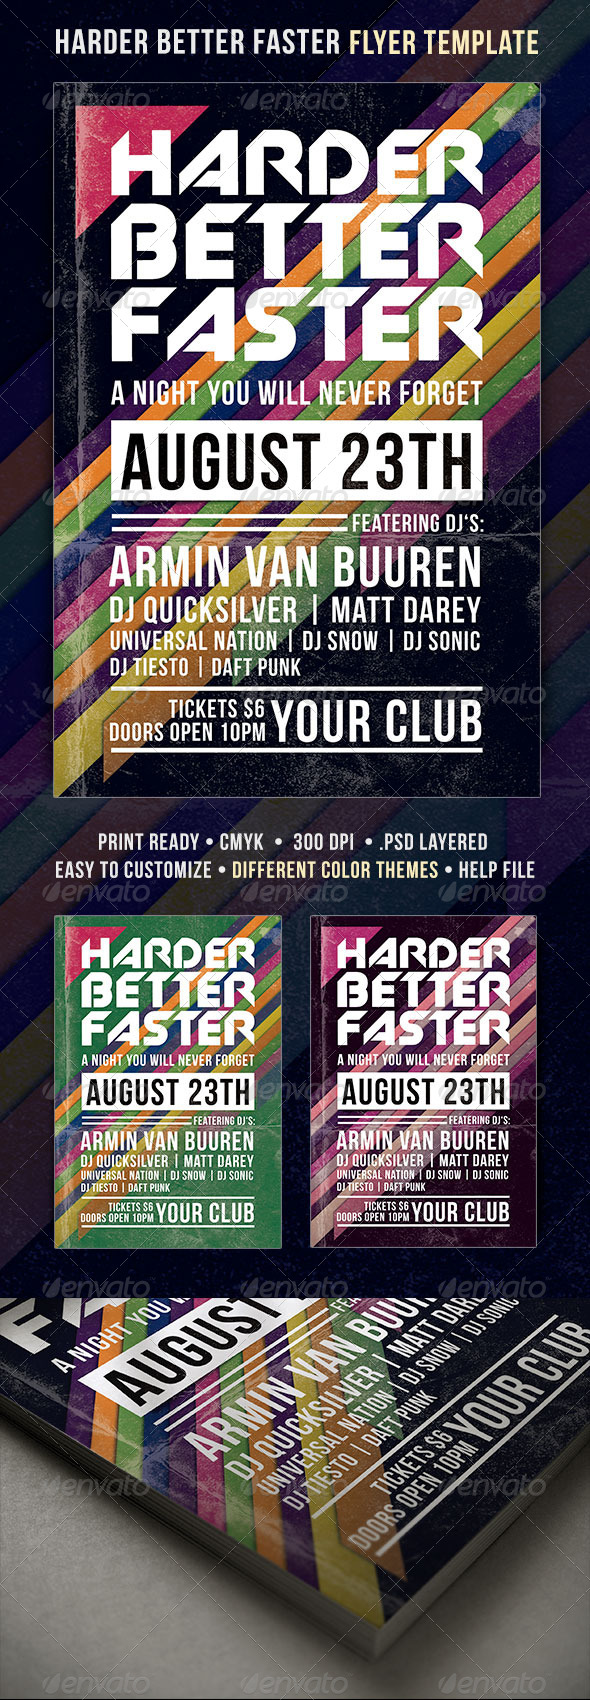 Harder Better Faster Flyer - Clubs & Parties Events